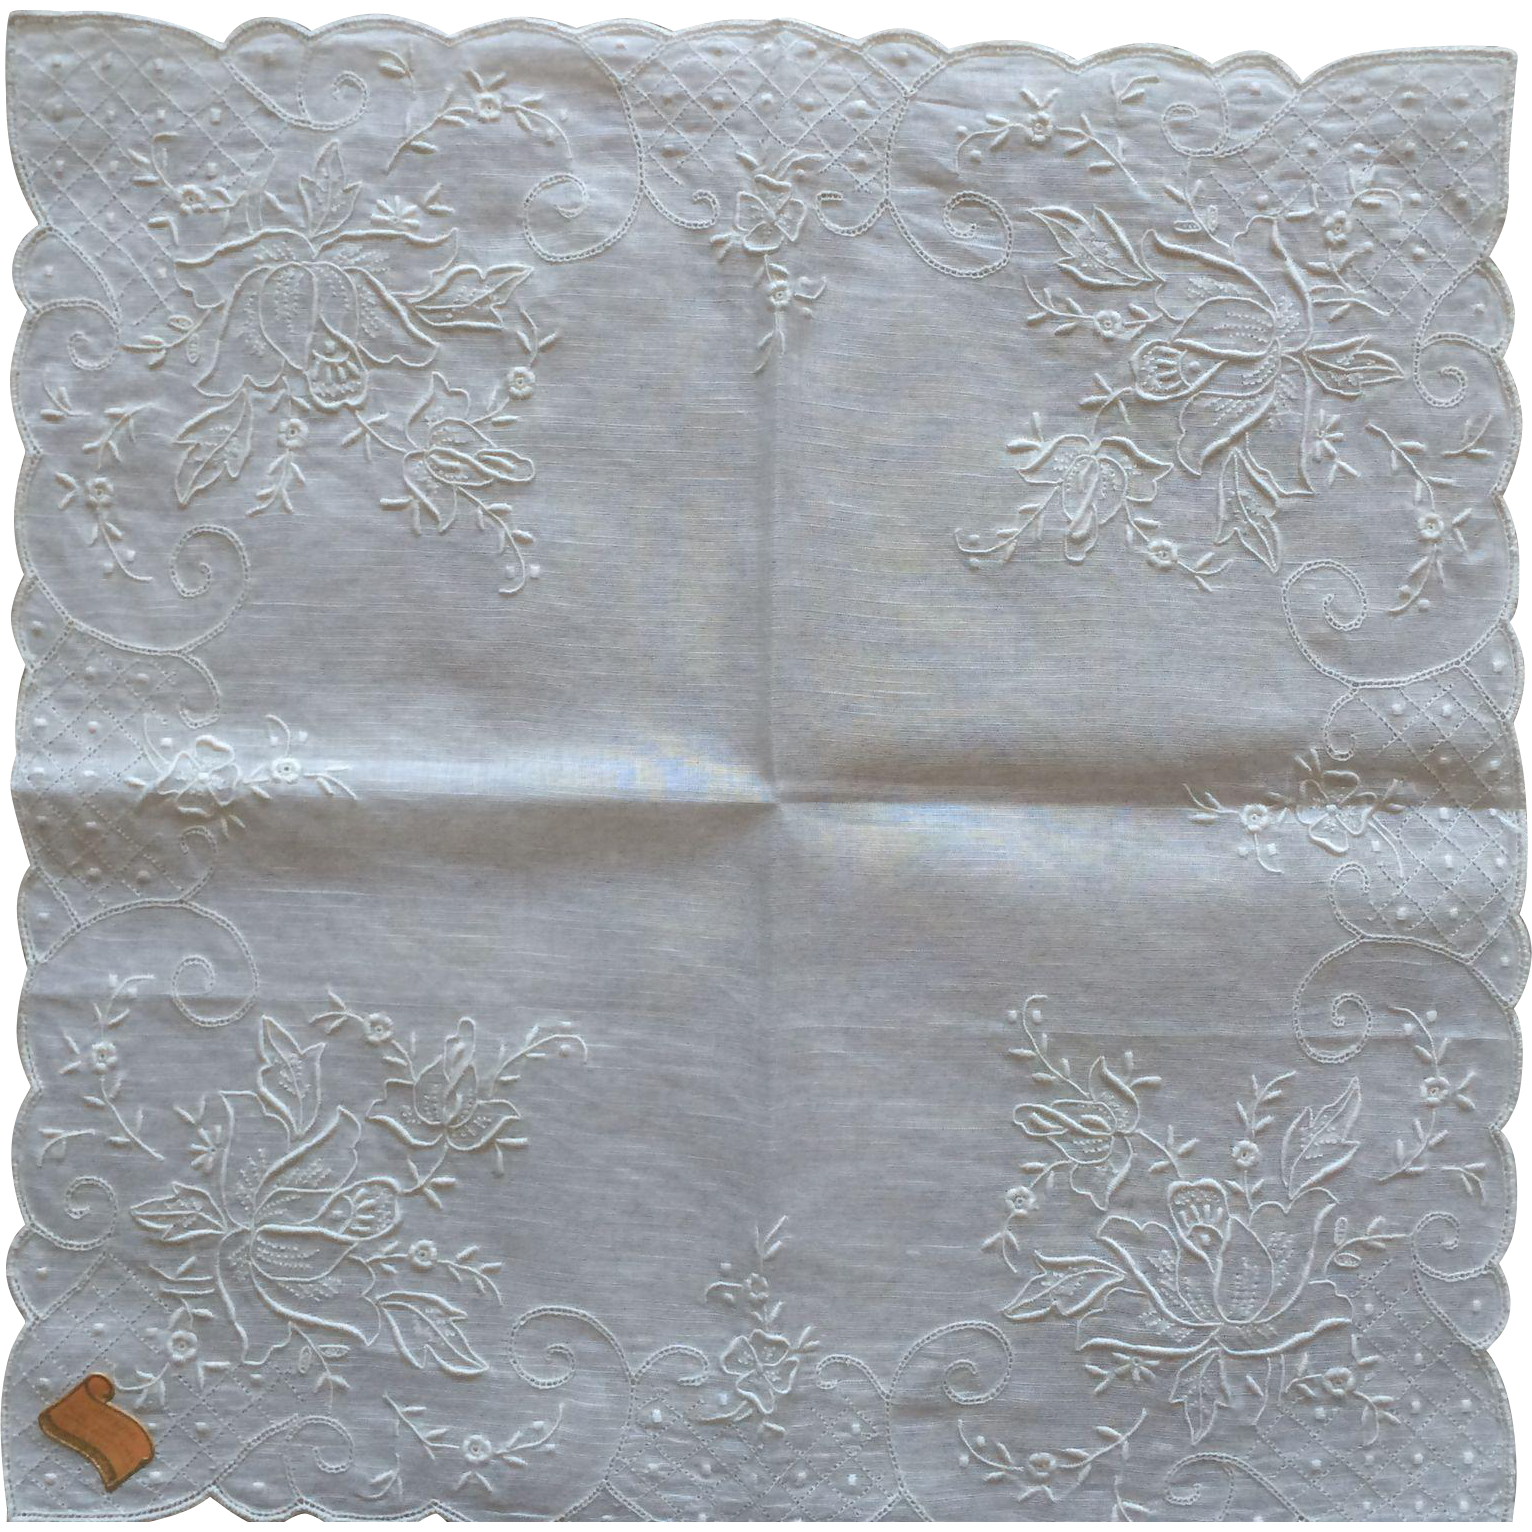 Vintage handmade cotton highly embroidered white in white handkerchief